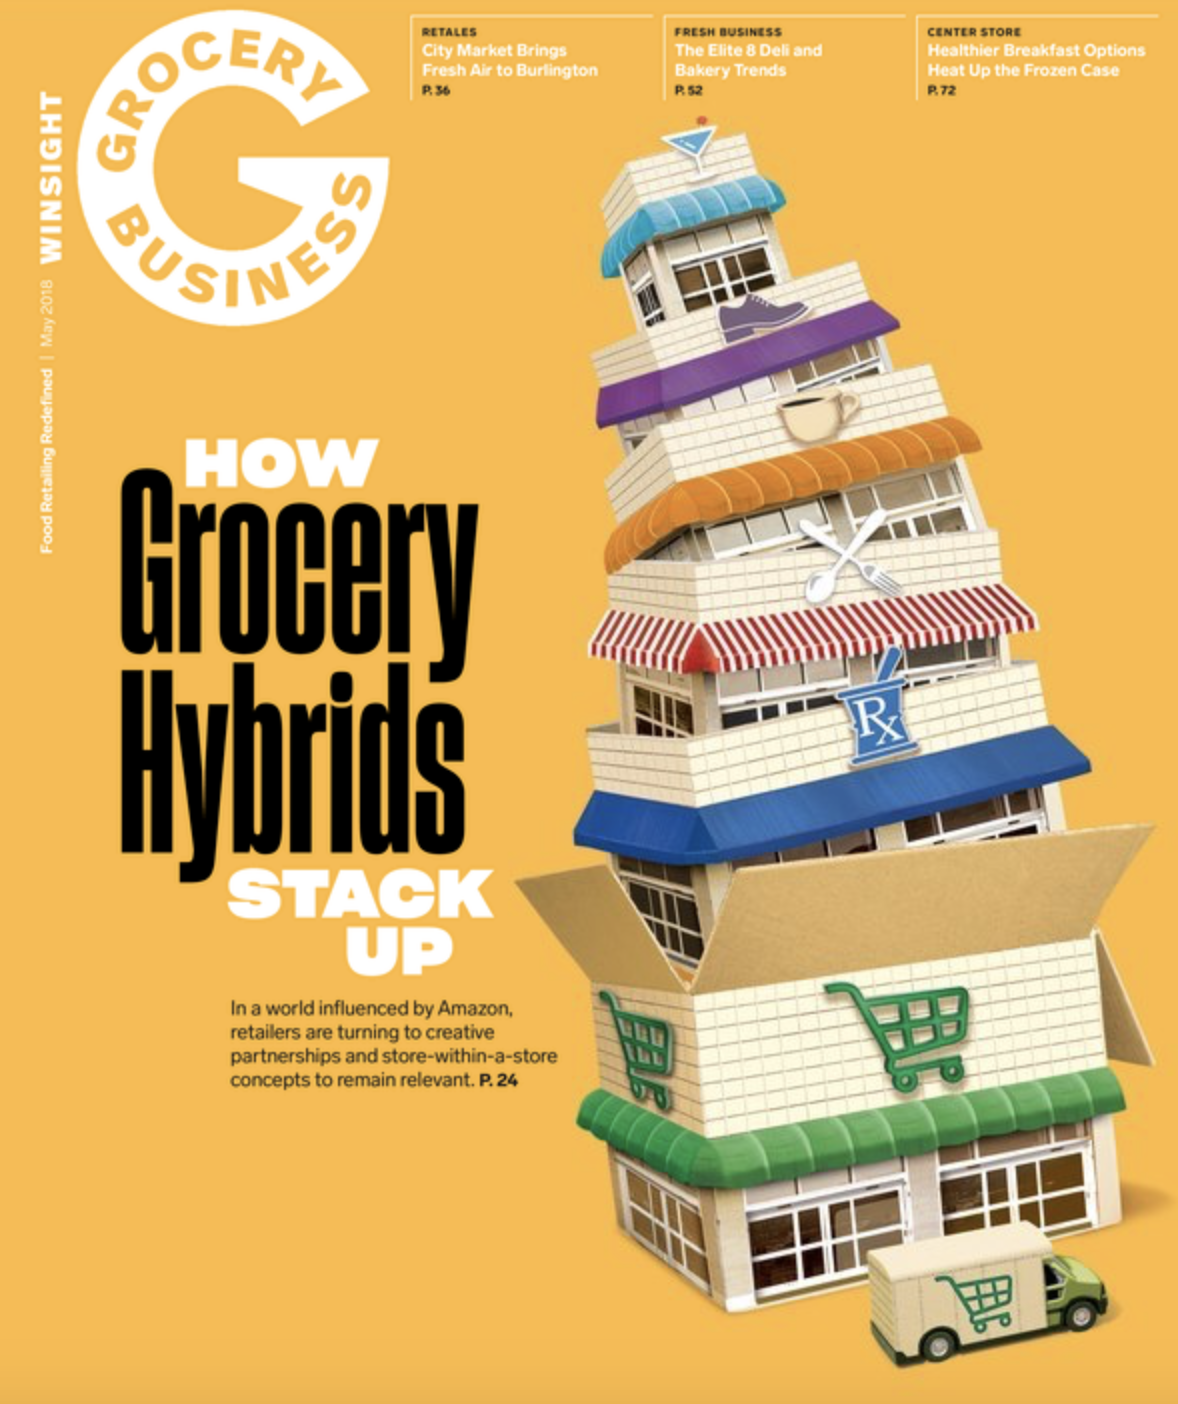 Winsight Grocery Business Magazine May 2018 Issue